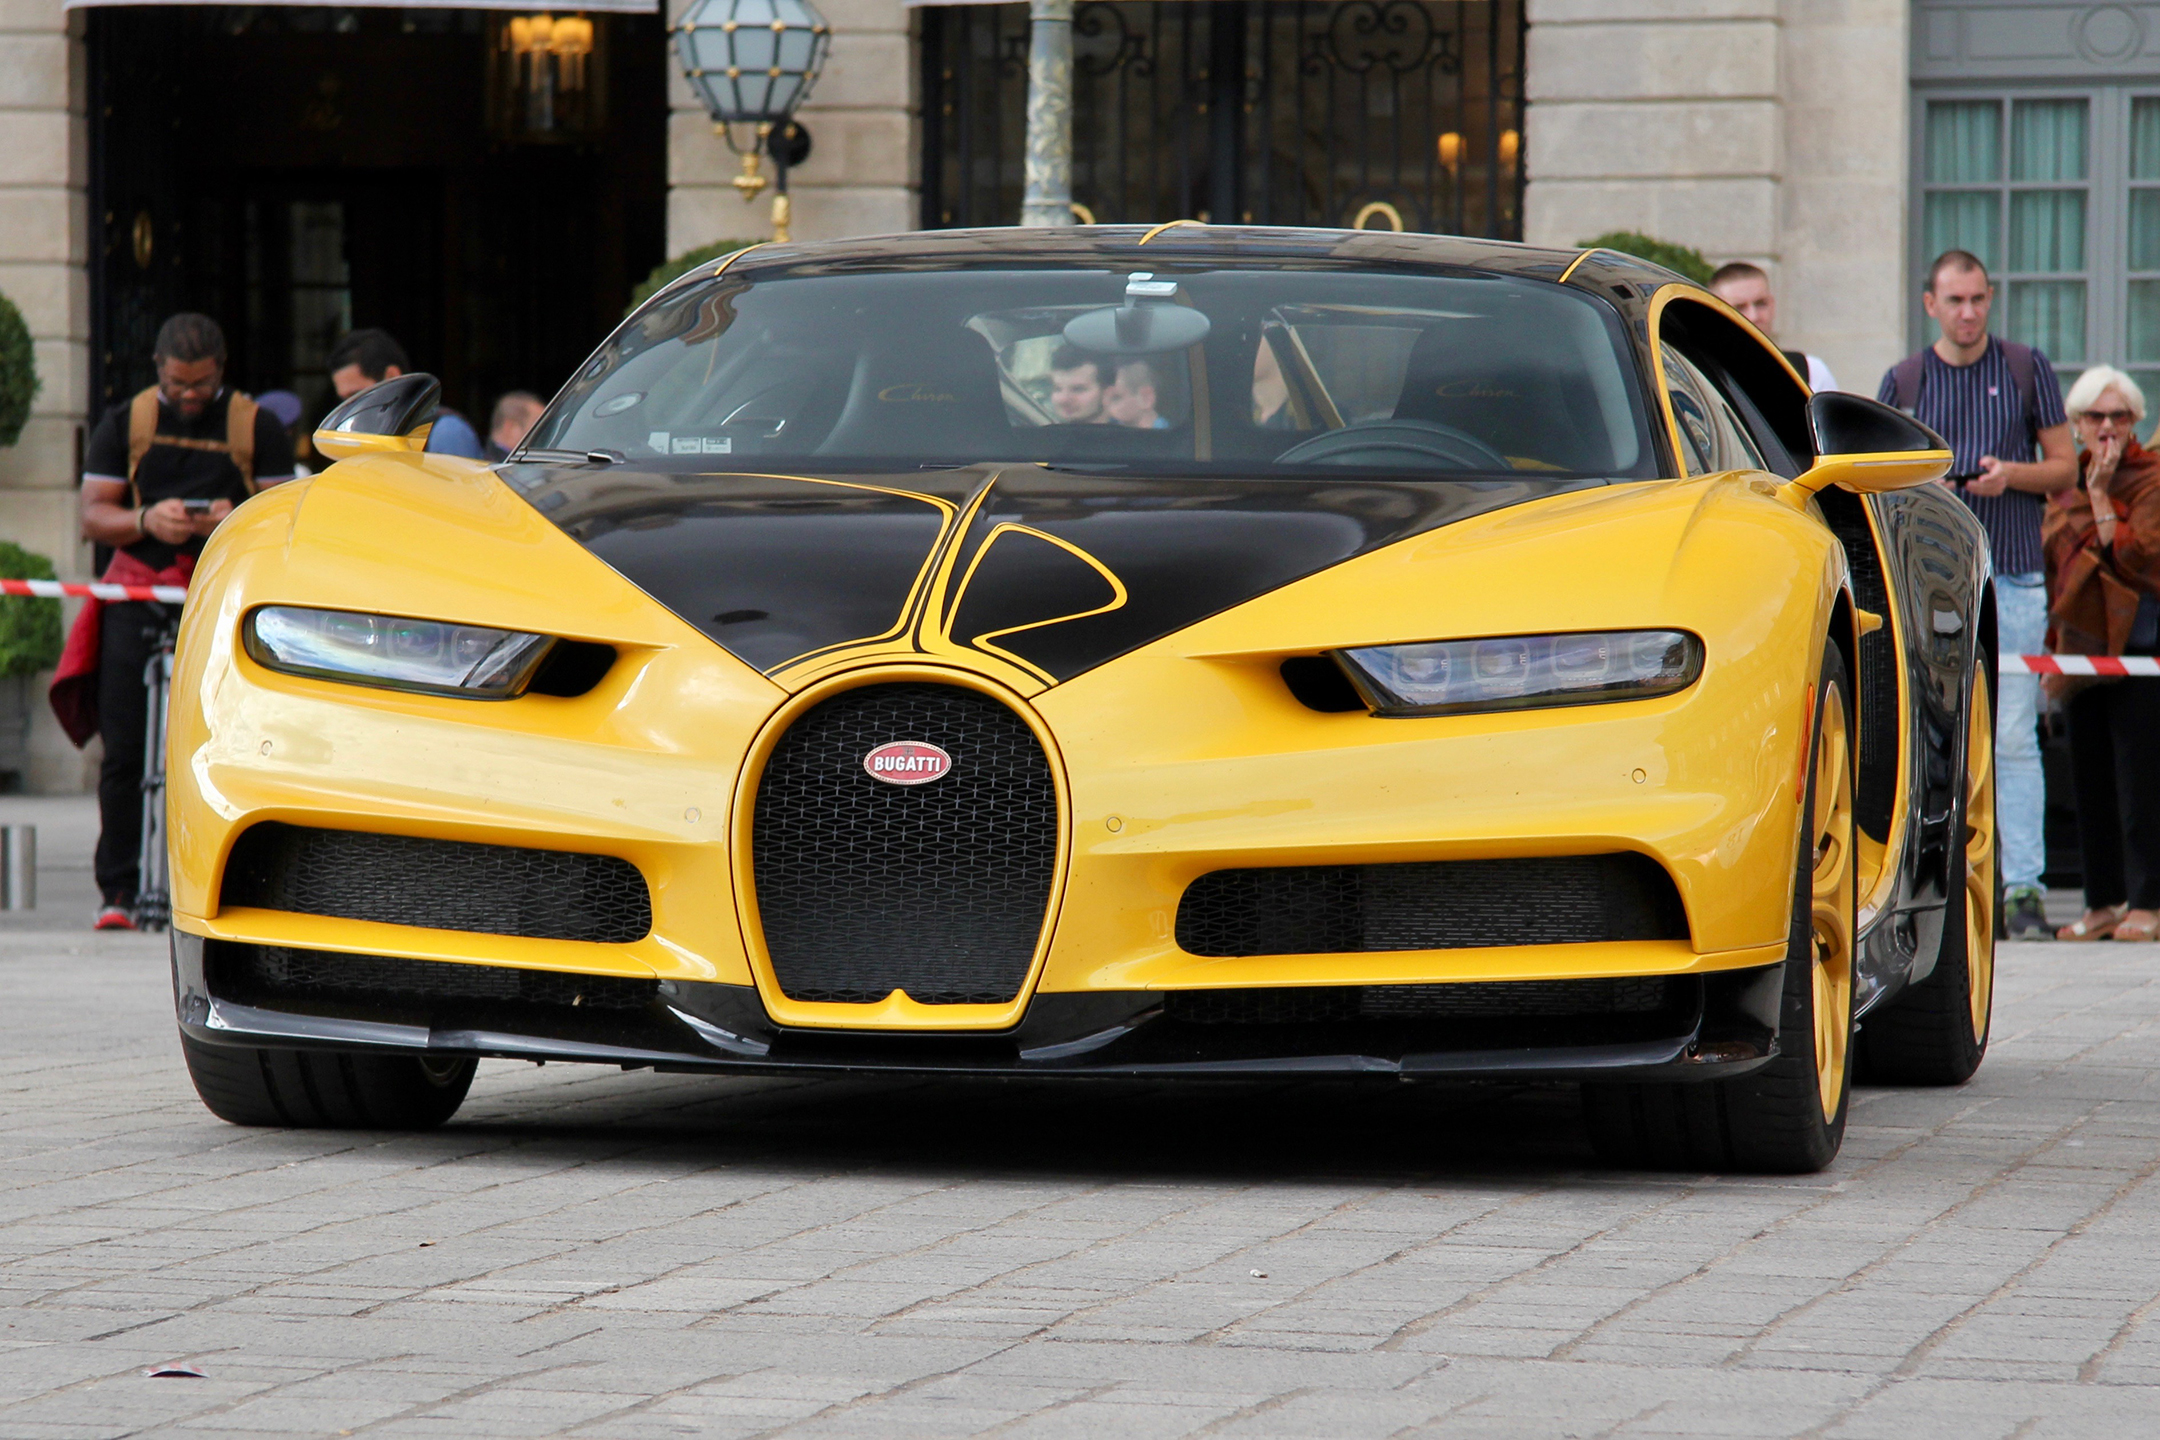 Bugatti Automobiles - yellow n black livery- Chiron - W16 - Grand Tour 2019 - Paris - photo Ludo Ferrari